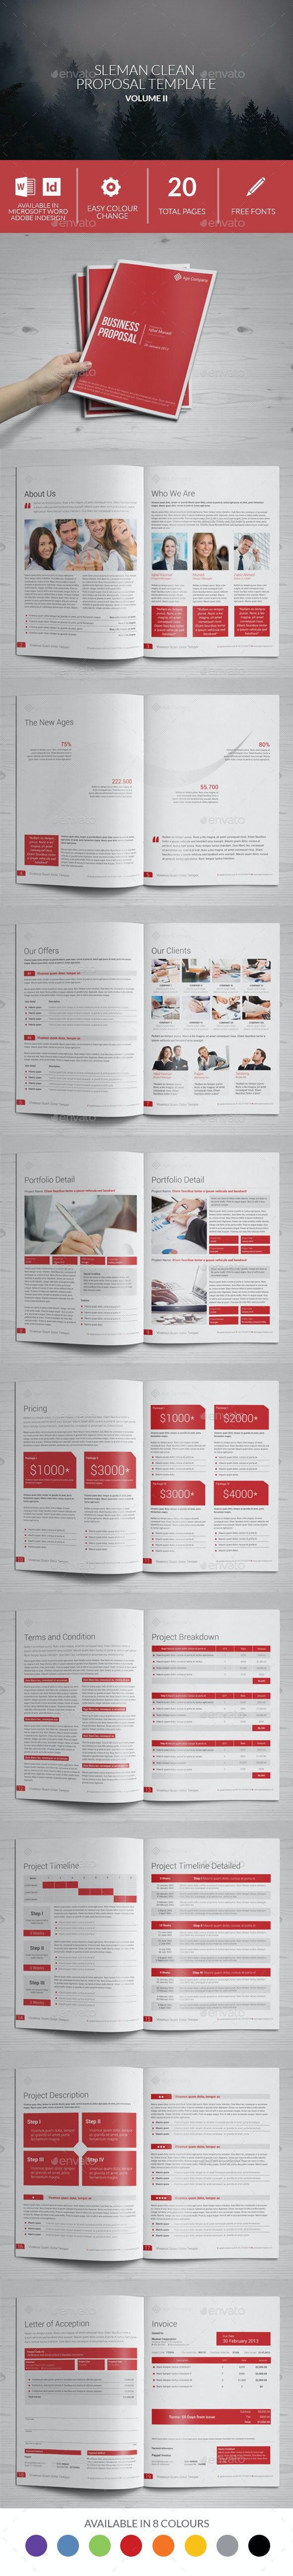 Sleman Clean Proposal Template Volume 2 - Proposals & Invoices Stationery